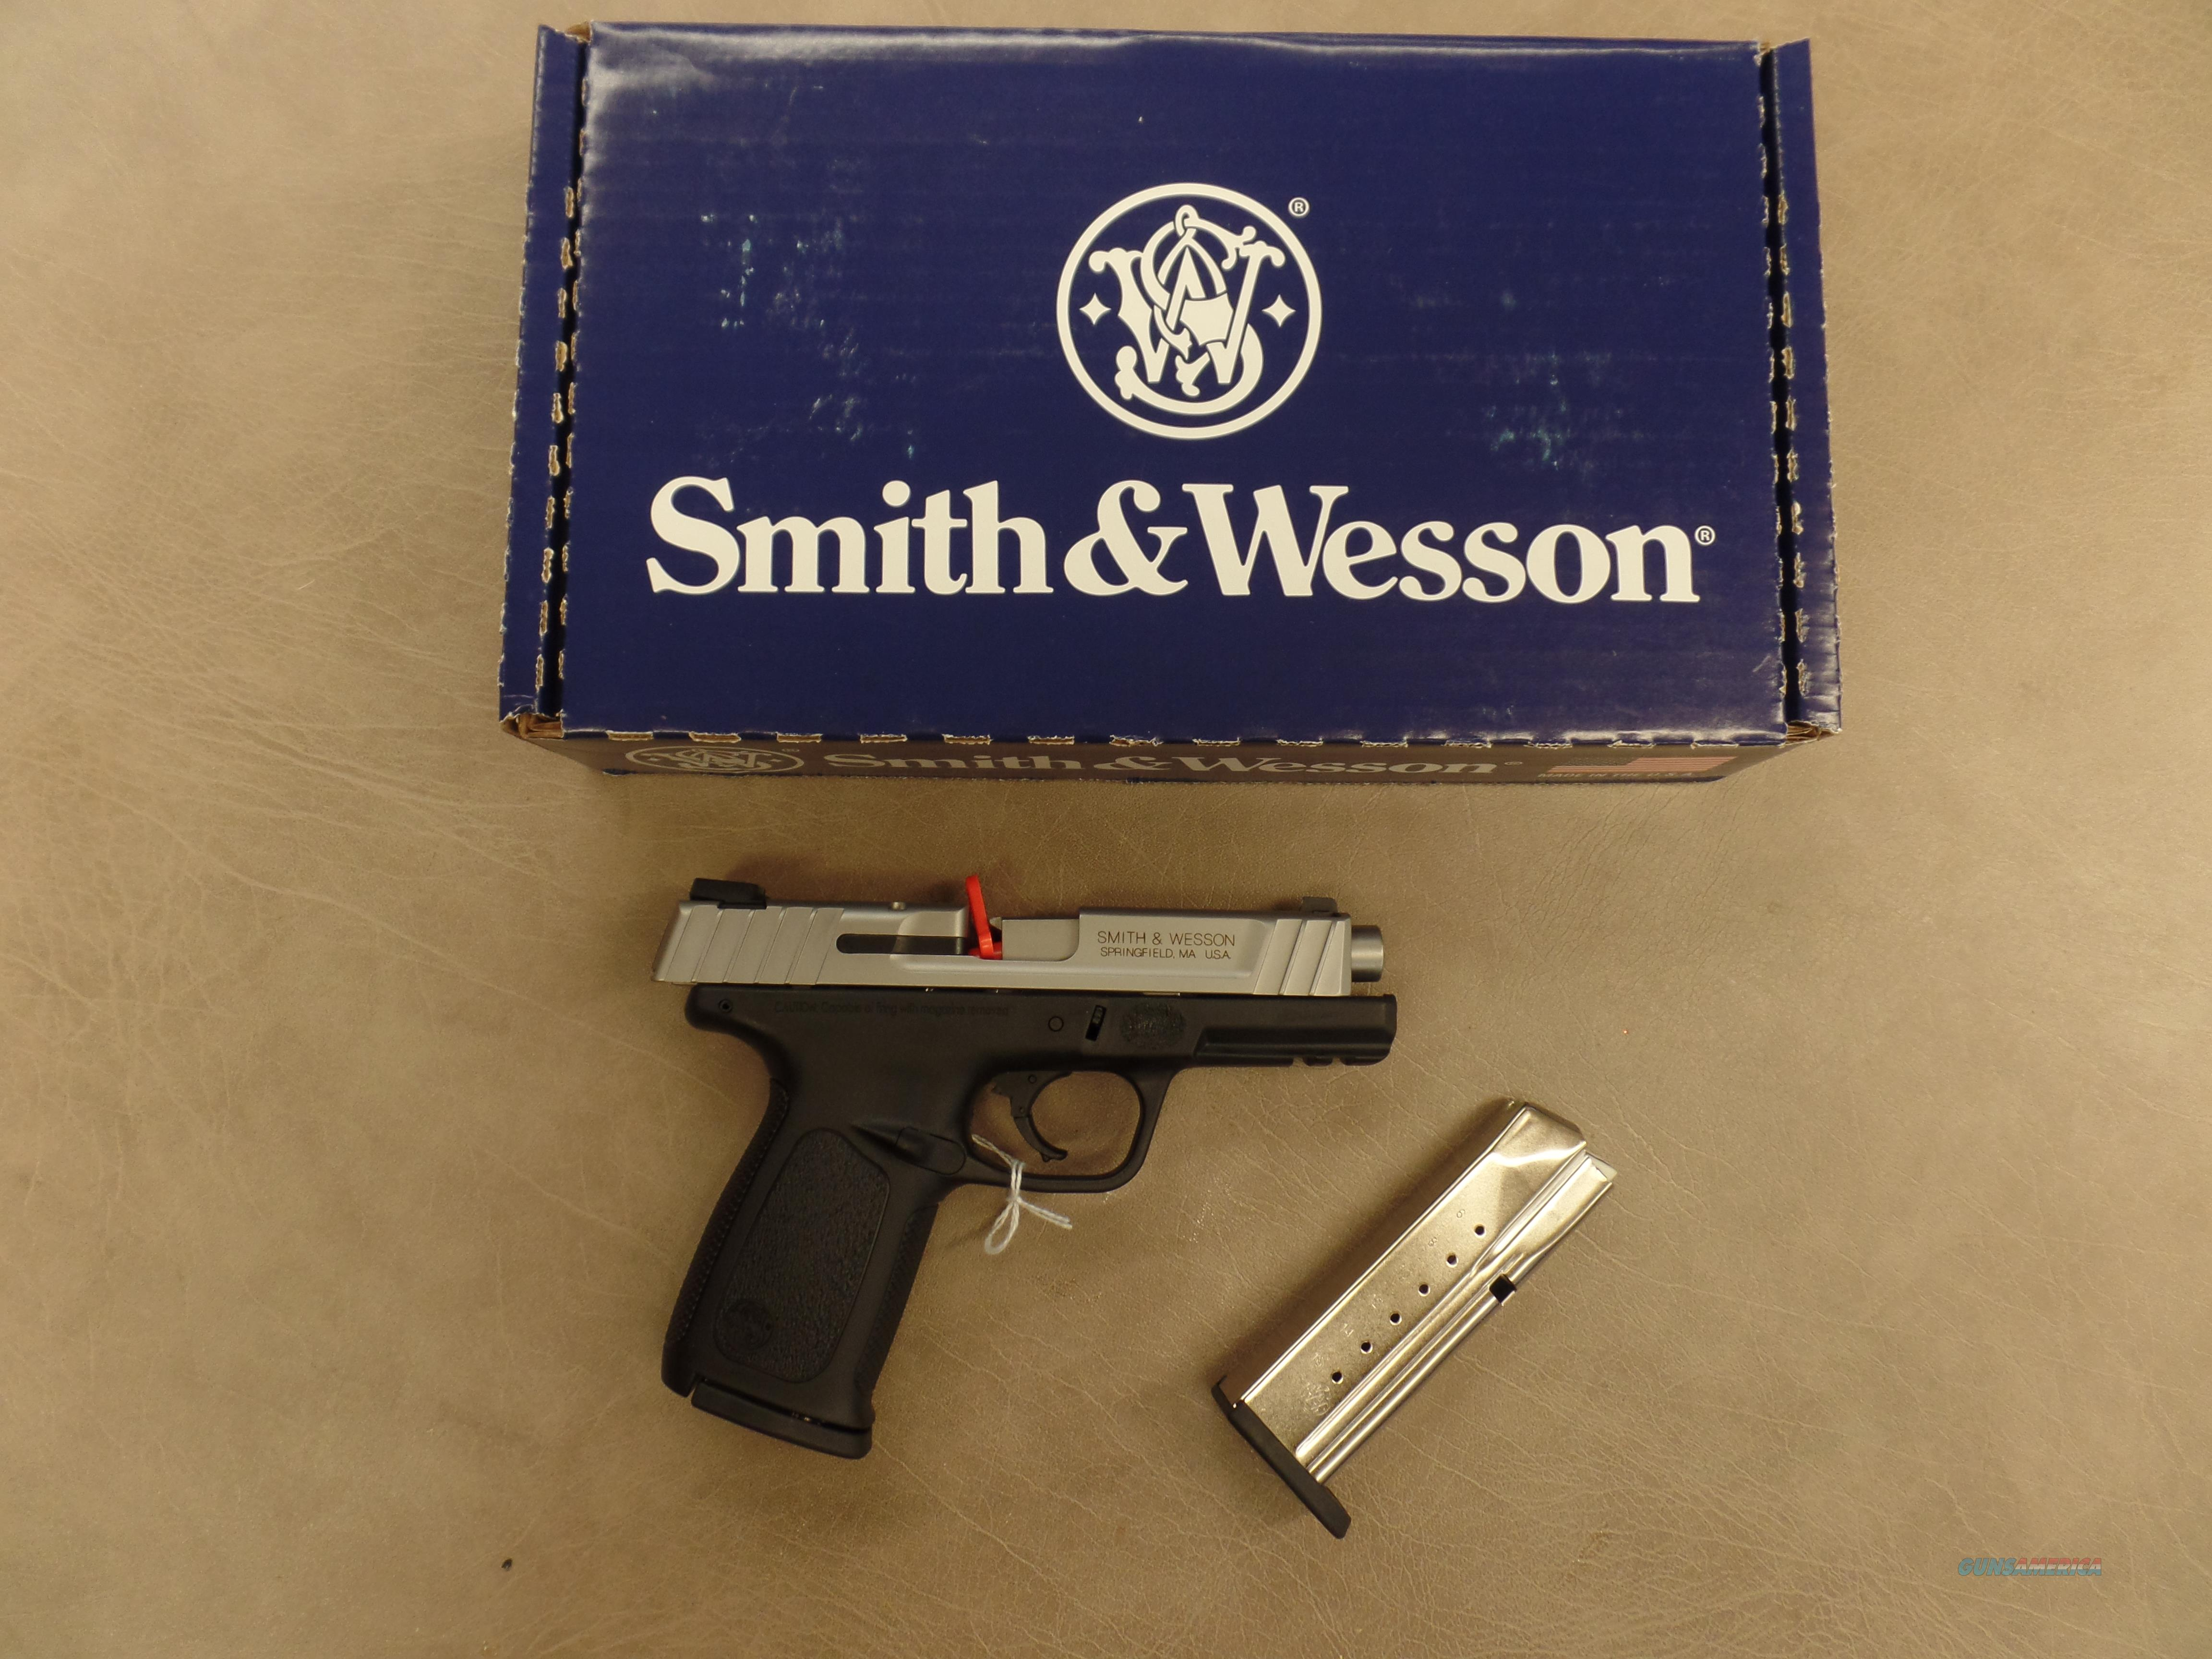 Smith & Wesson SD9VE  Guns > Pistols > Smith & Wesson Pistols - Autos > Polymer Frame